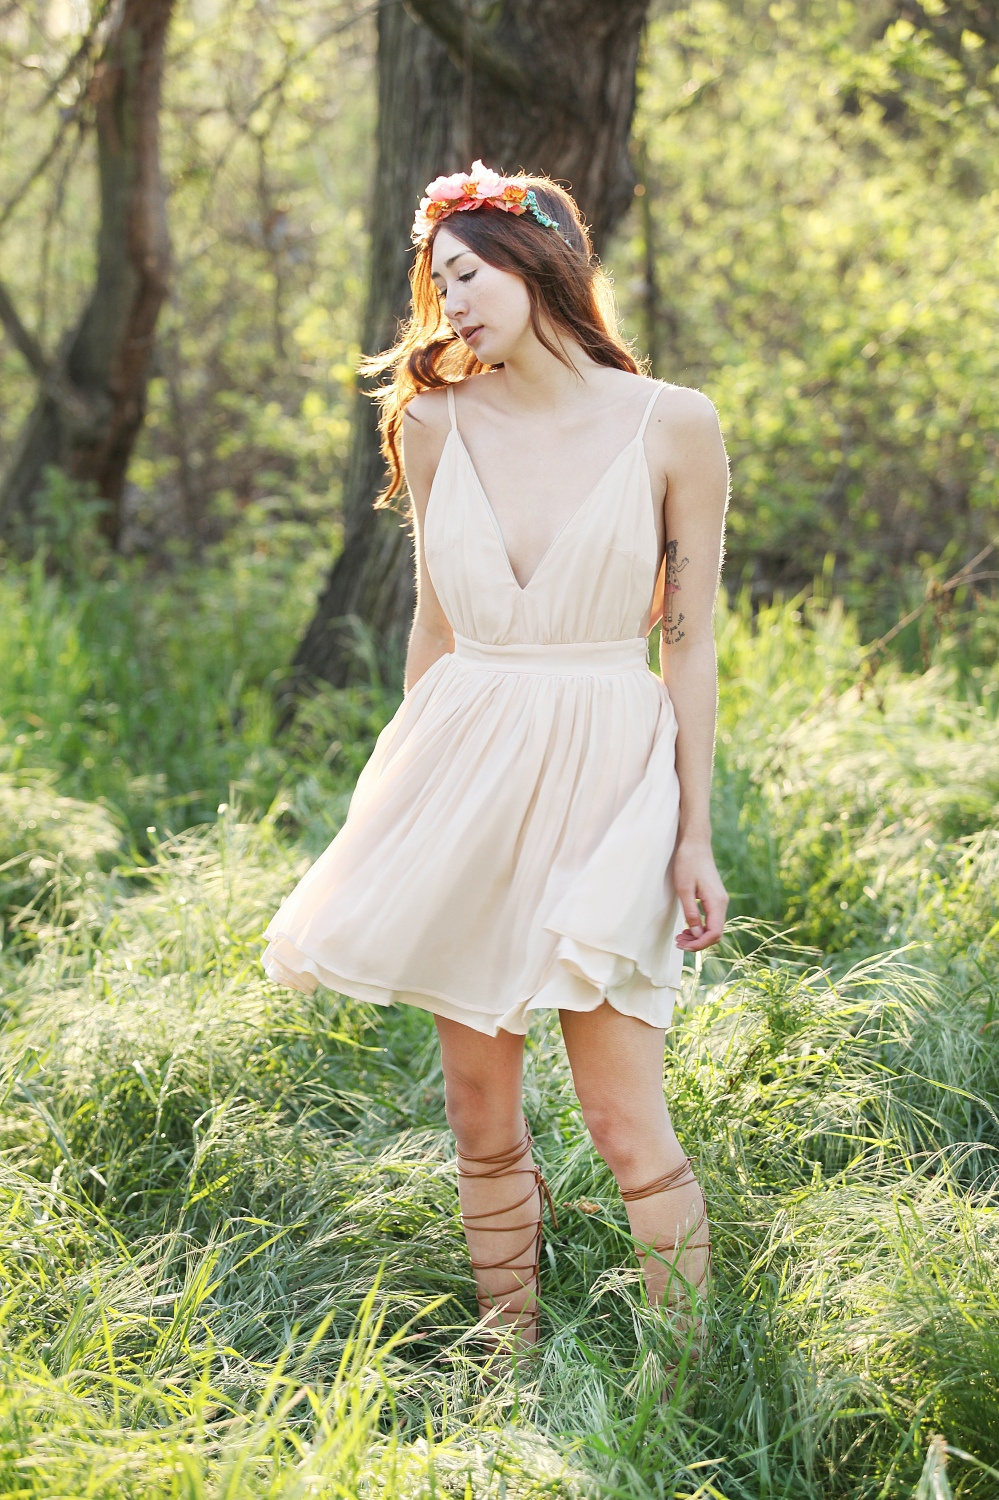 Dream Weaver in Alyssa Nicole Silk Vneck Dress, Pink Floral Crown, Lace up Gladiator Sandals